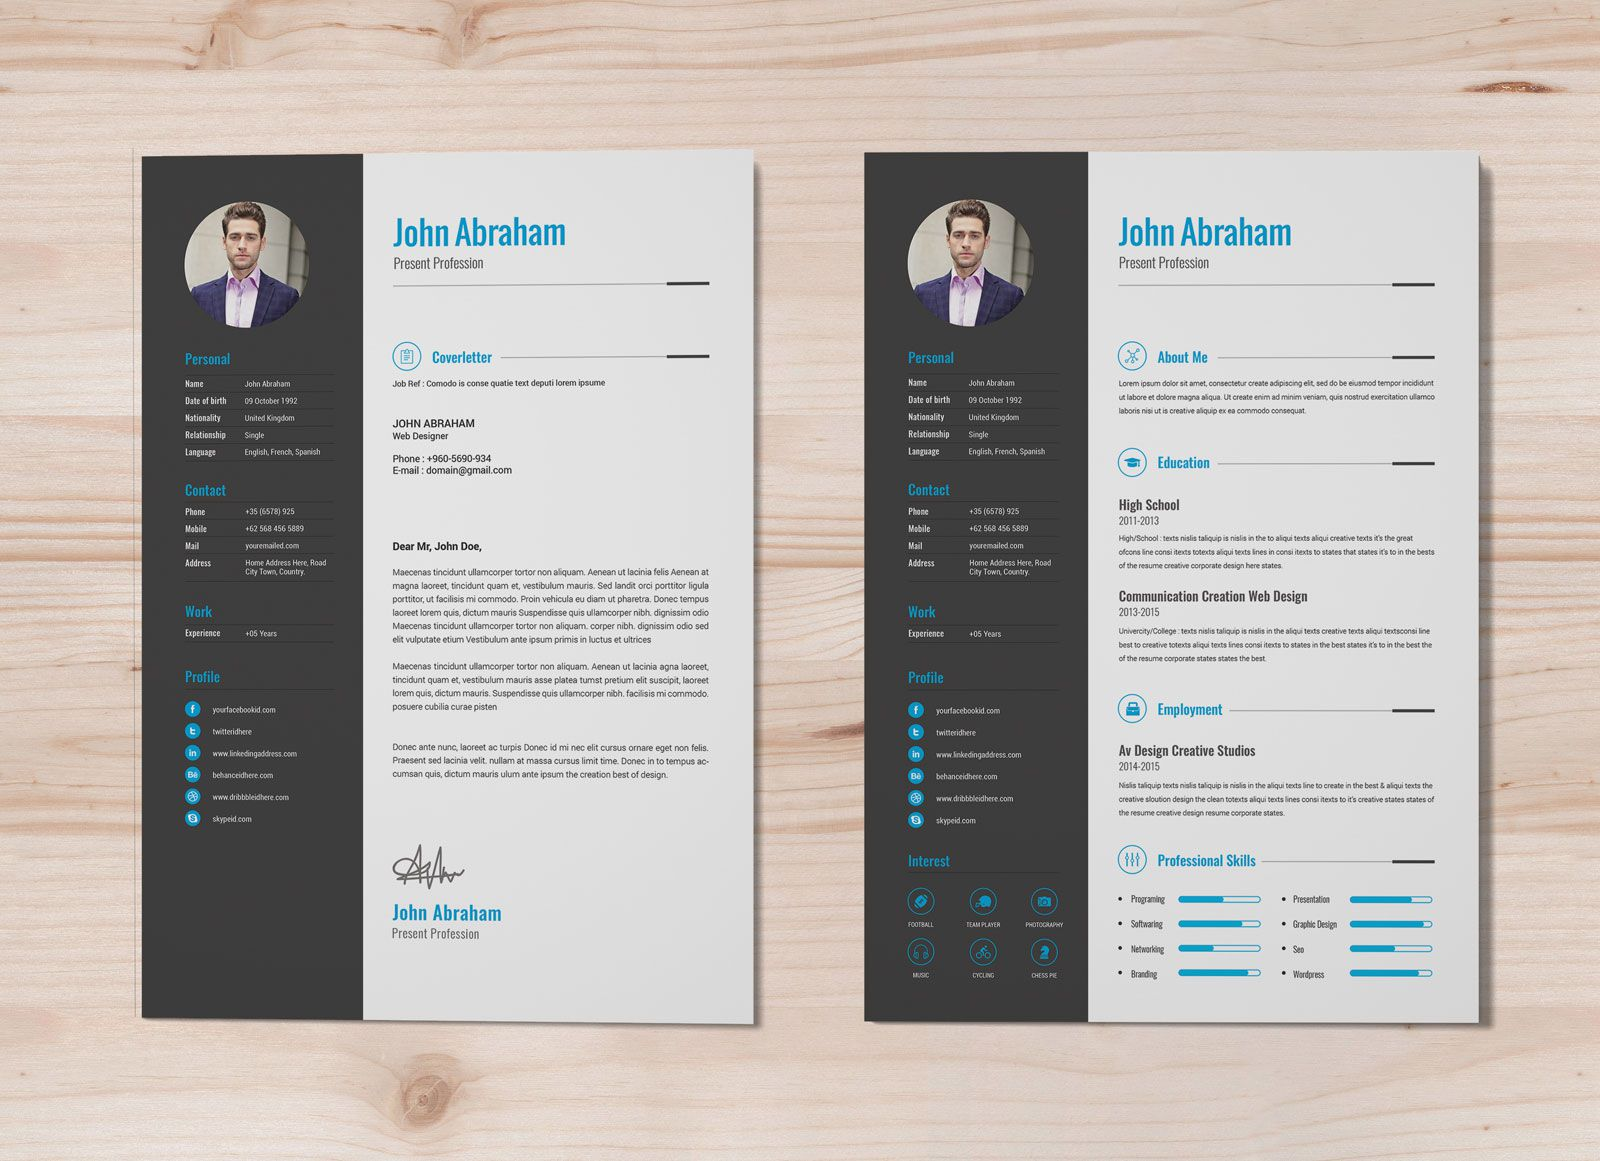 004 Dreaded Word Resume Template Free High Definition  Fresher Format Download 2020 MFull